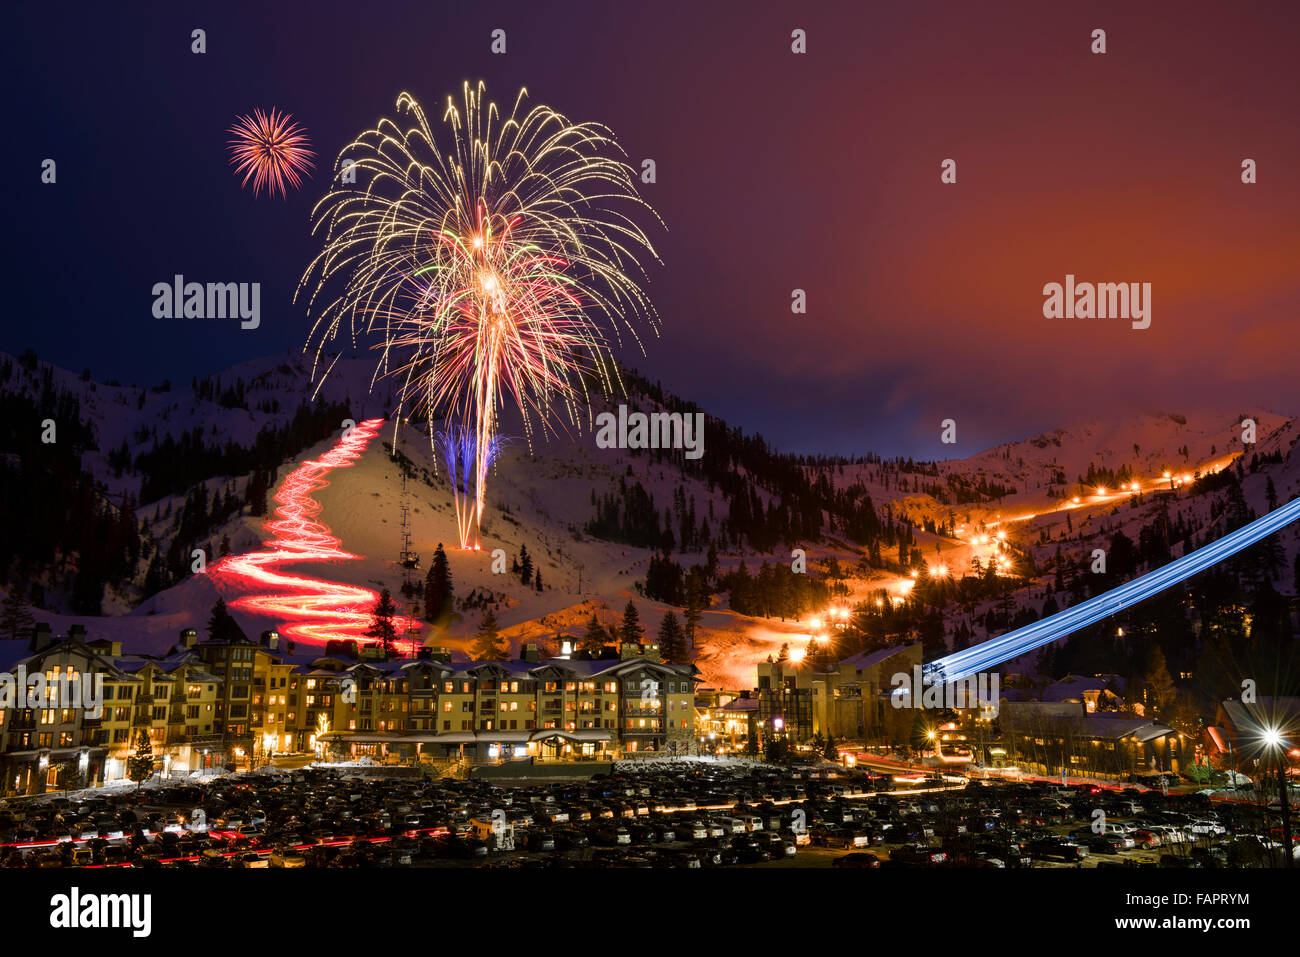 Squaw Valley Ski Resort in Olympic Valley, California,winter fireworks and torchlight parade on new year's eve 2015. Stock Photo